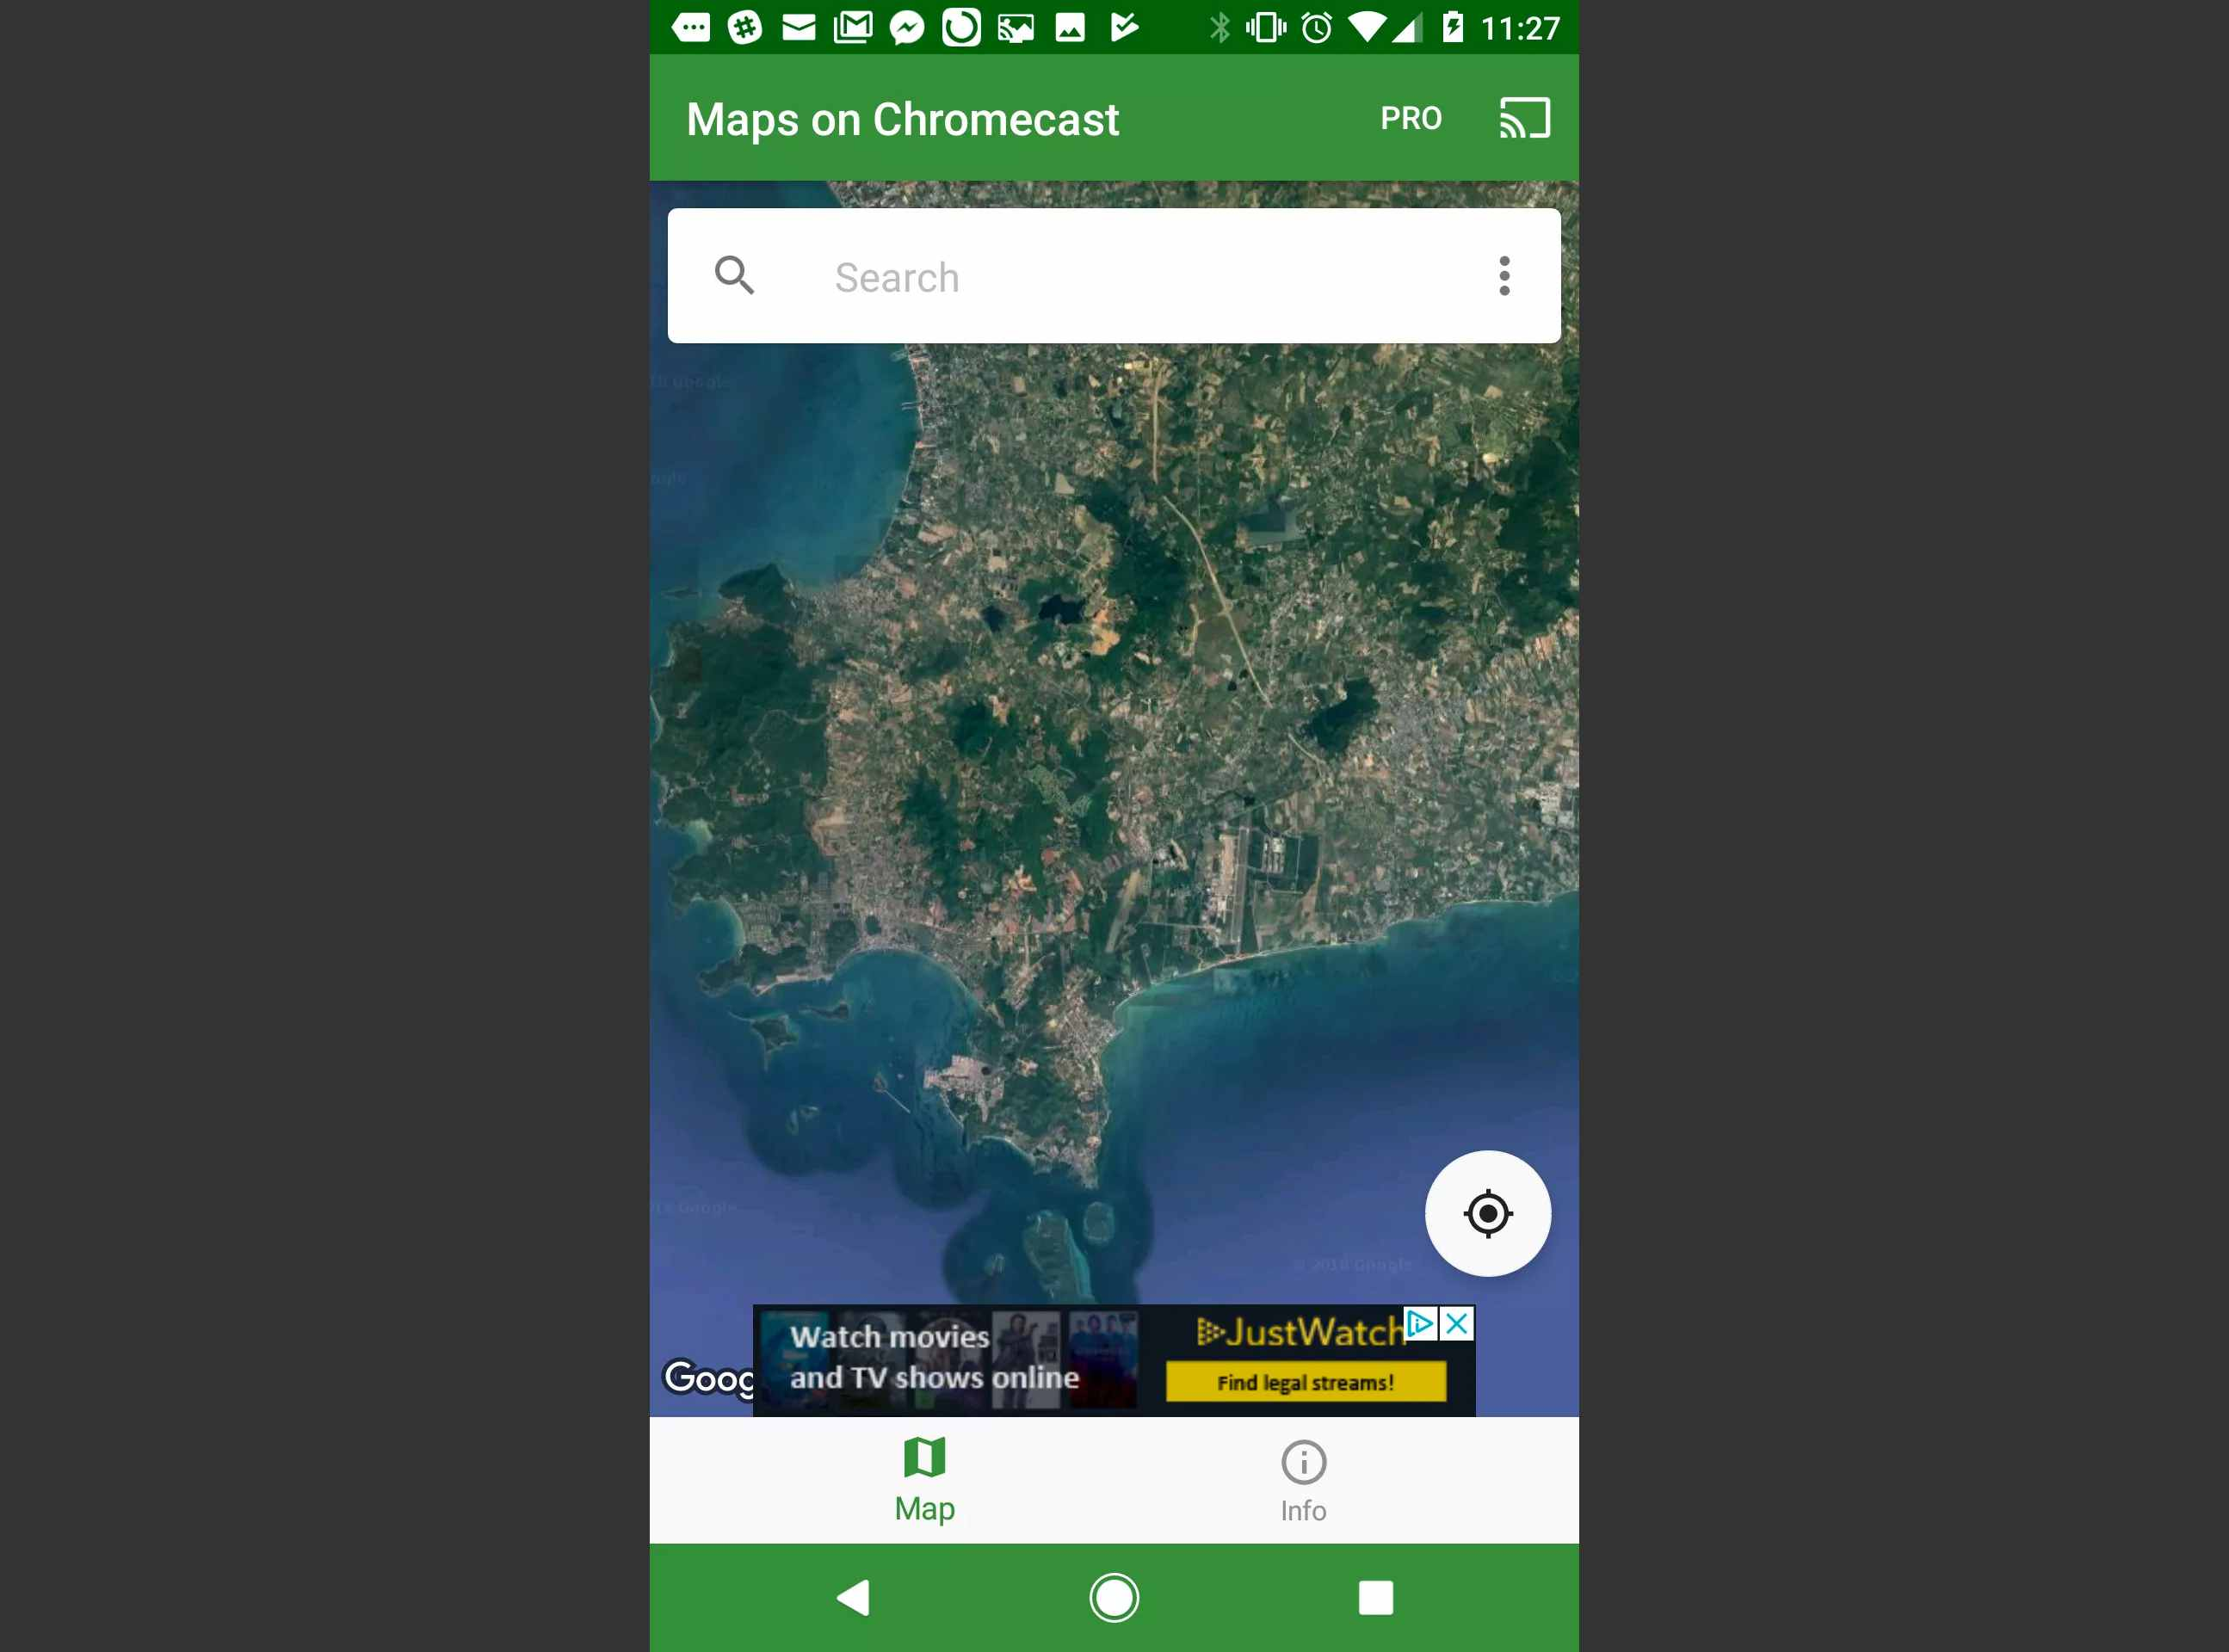 The Maps on Chromecast map search window